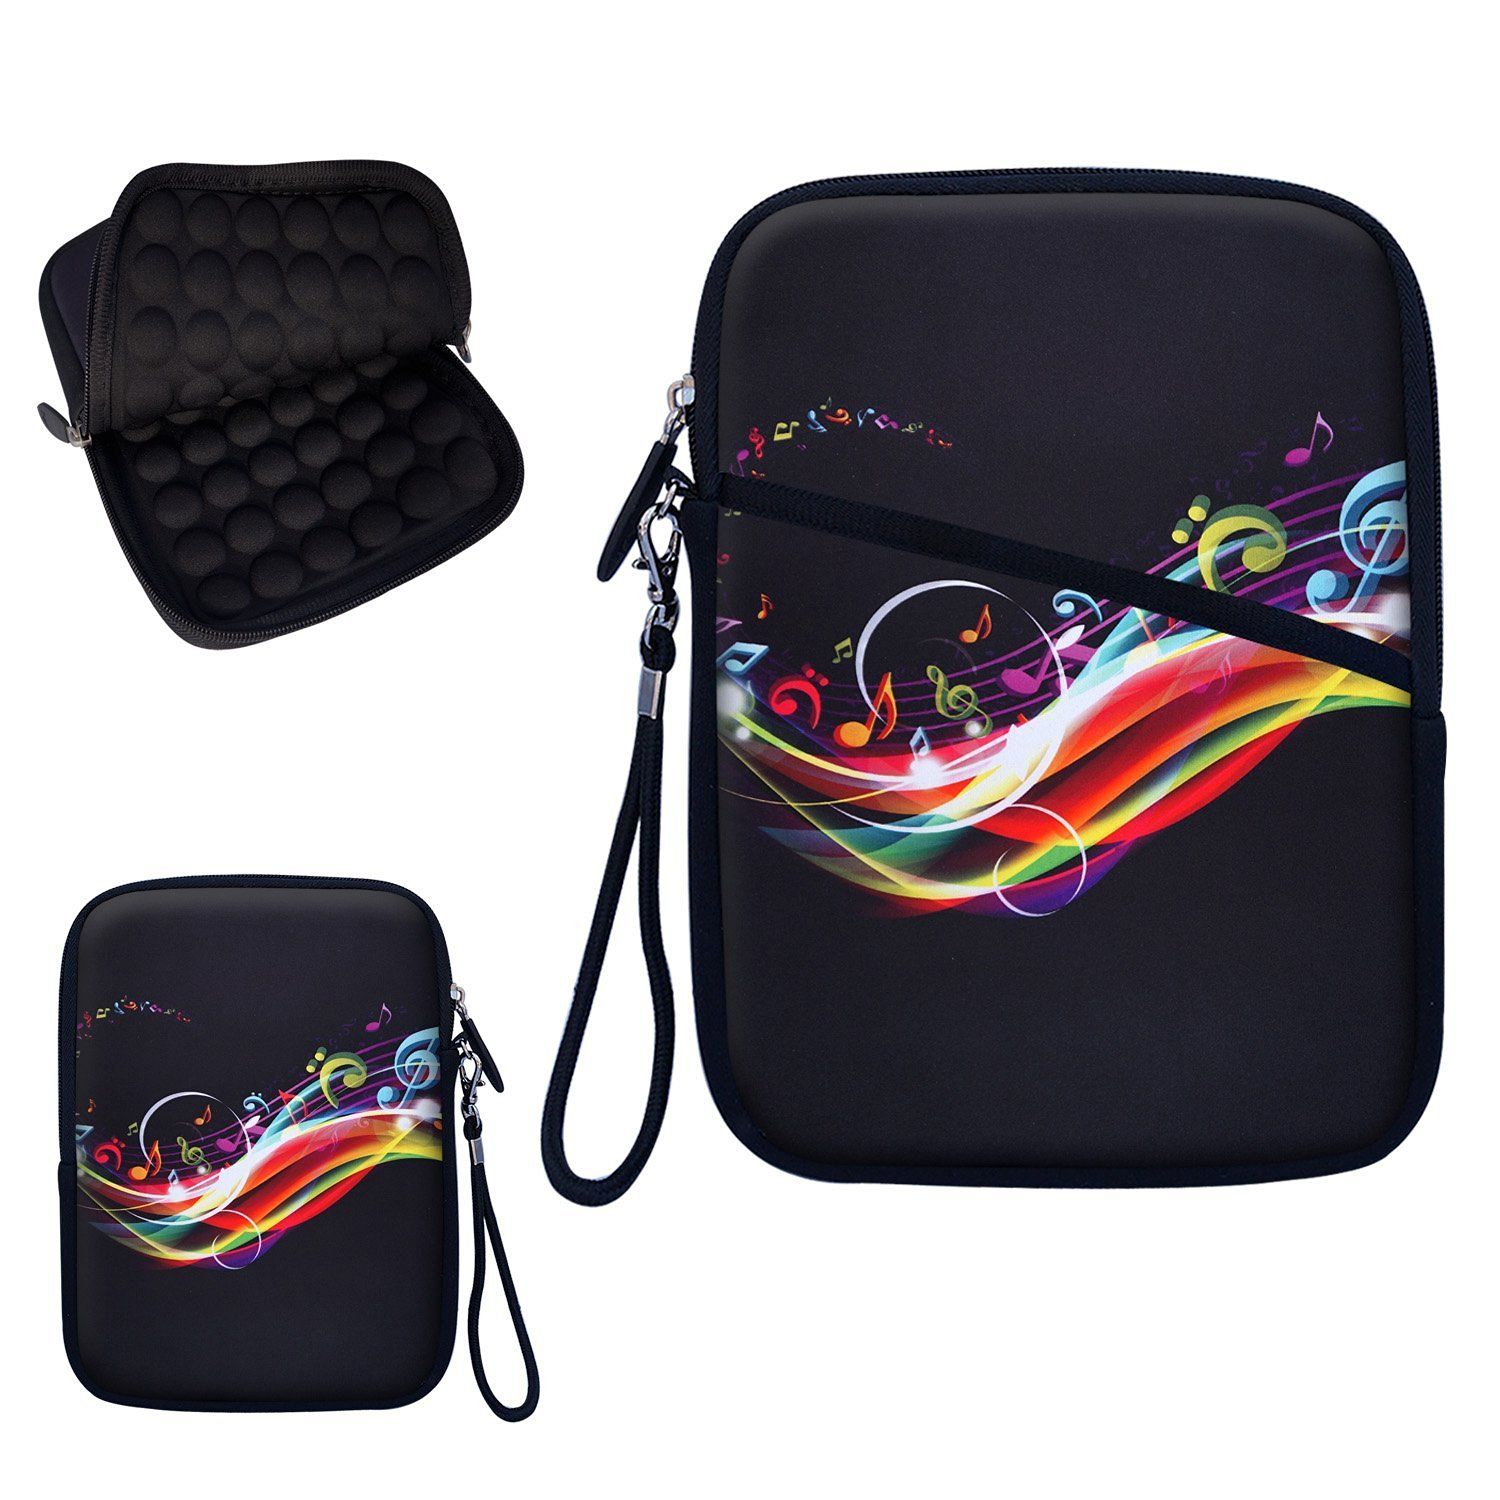 """Neoprene Super Padded Bubble Sleeve Case Cover with Removable Carrying Handle Fits Apple iPad Mini / Amazon Kindle Fire HD / Google Nexus 7 / Samsung Galaxy / Asus / Acer / Archos and Similar Size 7"""" Tablet - Rainbow Butterfly Design"""